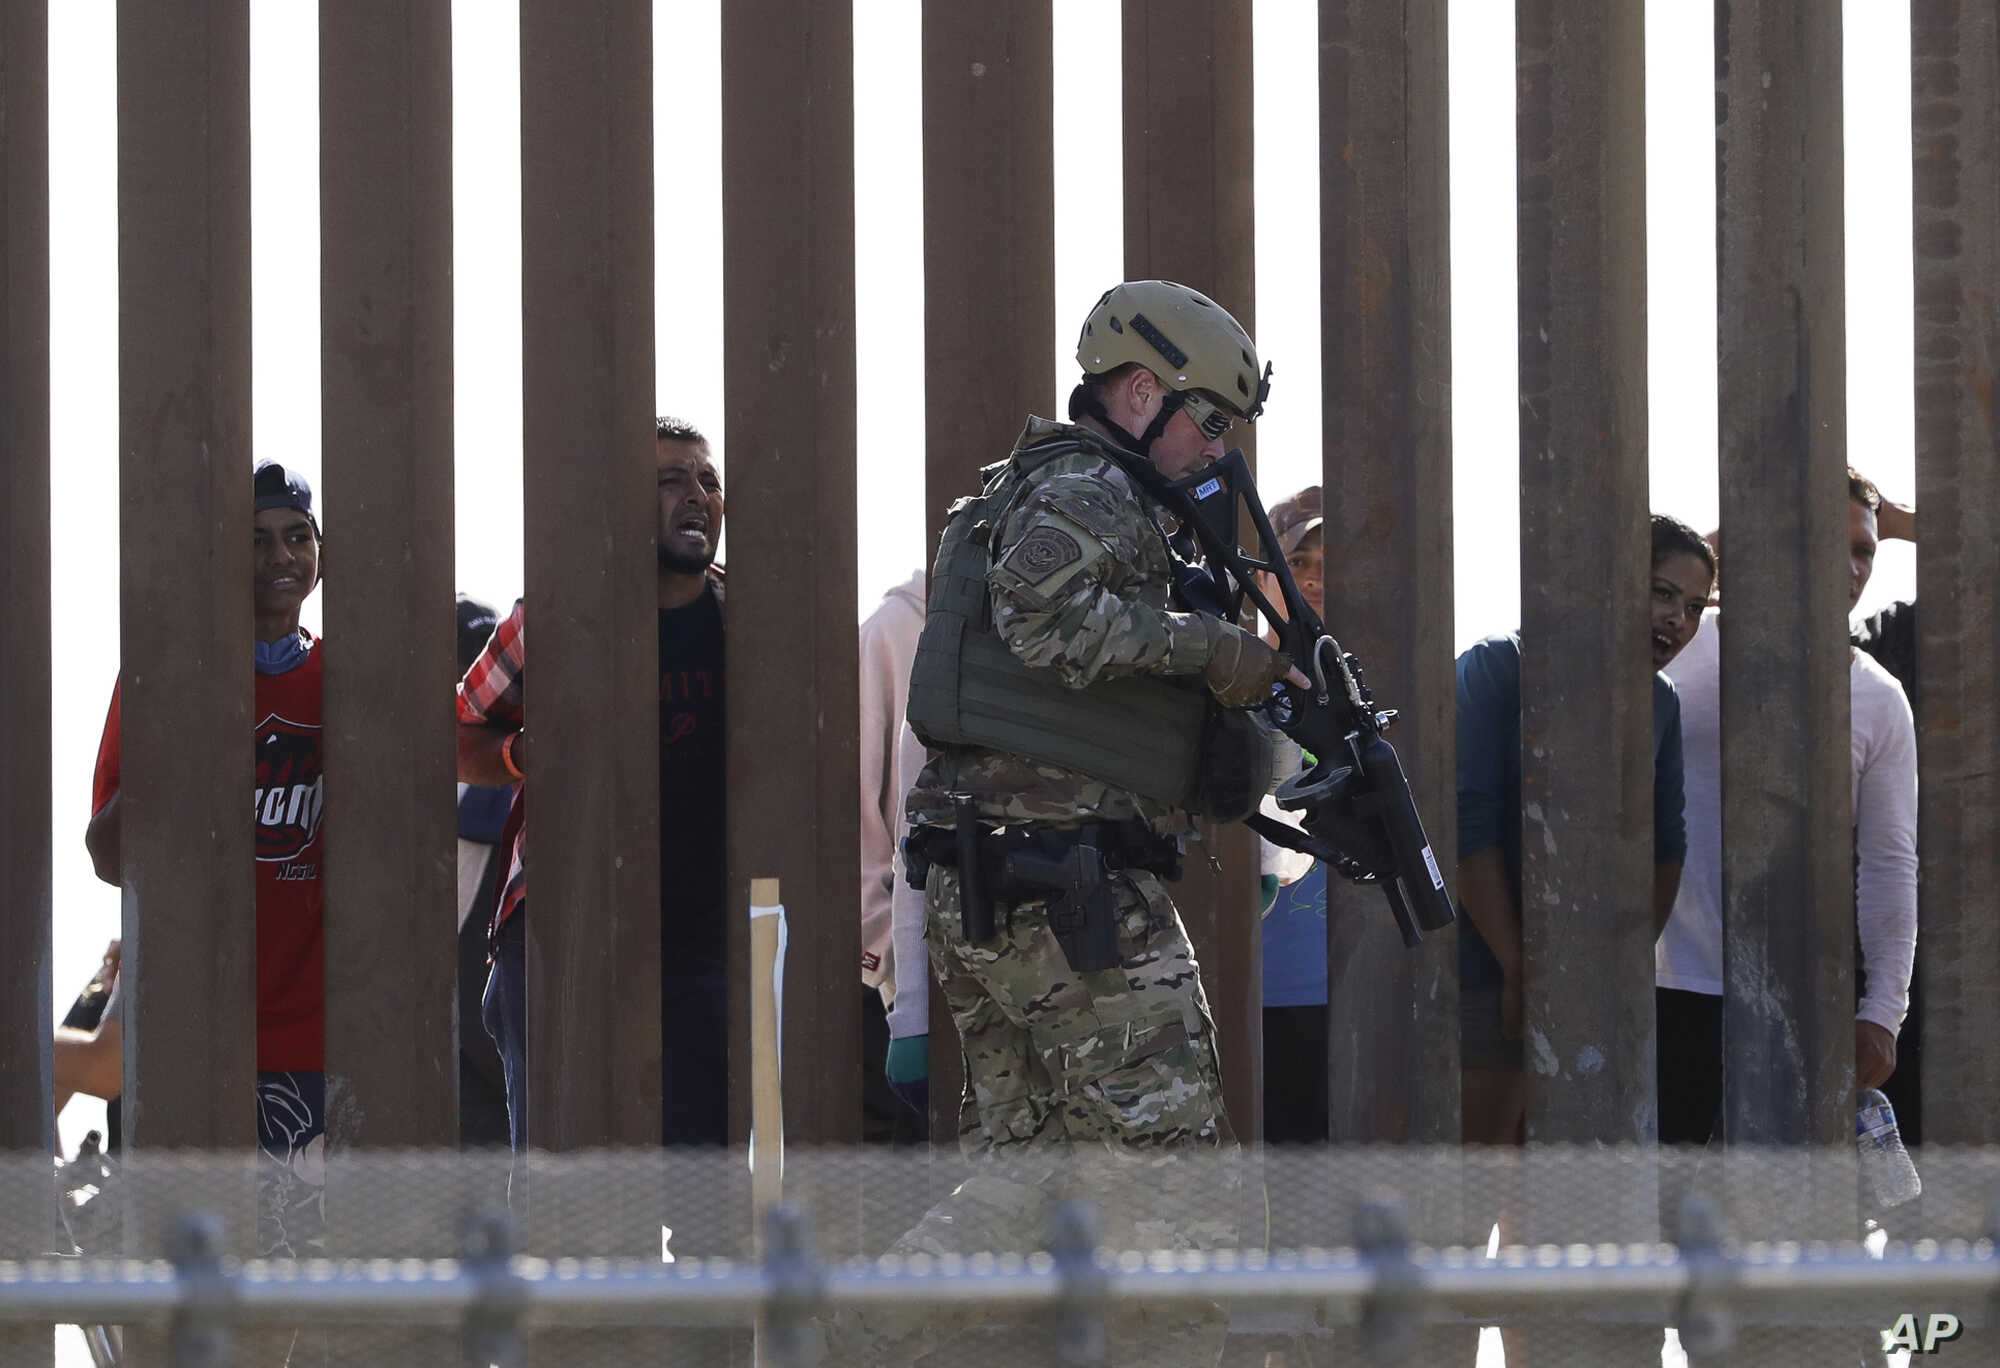 A U.S. Customs and Border Protection officer walks along a wall at the border between Mexico and the United States, as seen from San Diego, California, Nov. 25, 2018.